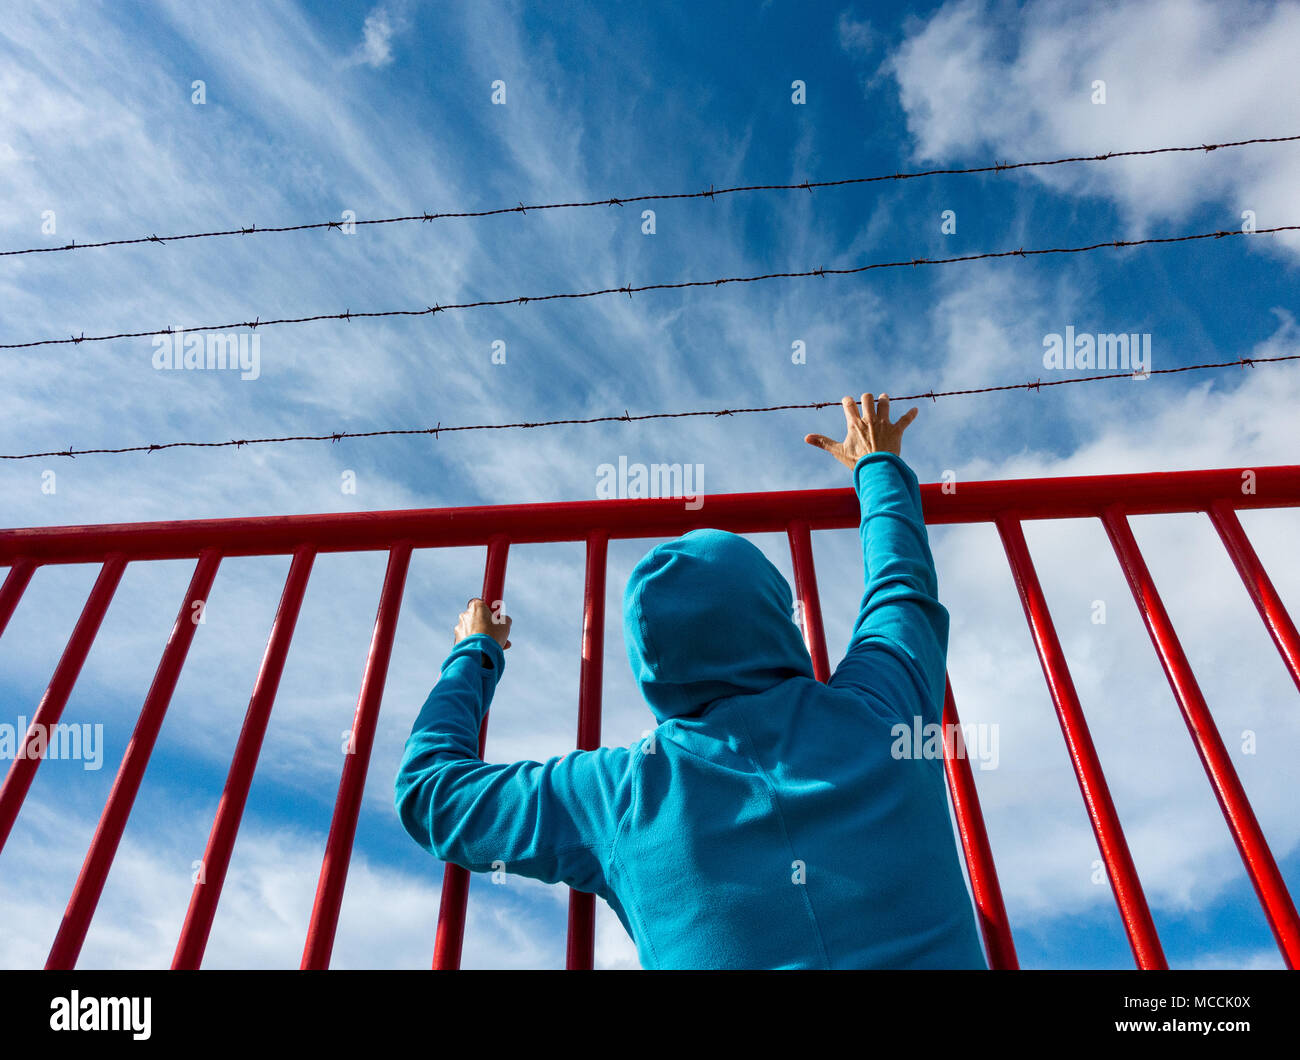 Woman behind bars topped with barbed wire: asylum,refugee,prison,detention,brexit, borders... concept image - Stock Image